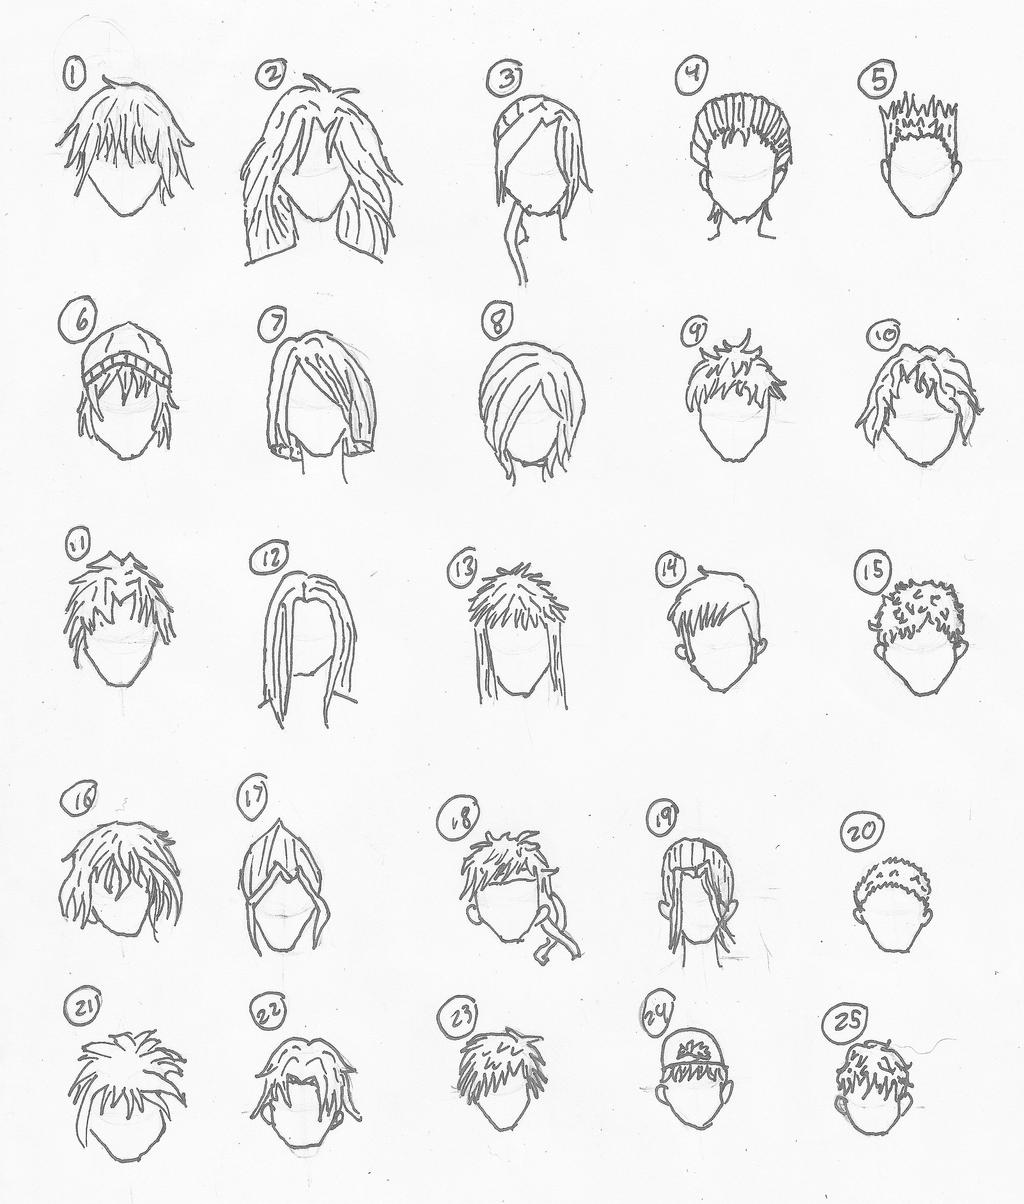 Cute Anime Haircuts Images - Haircut Ideas for Women and Man